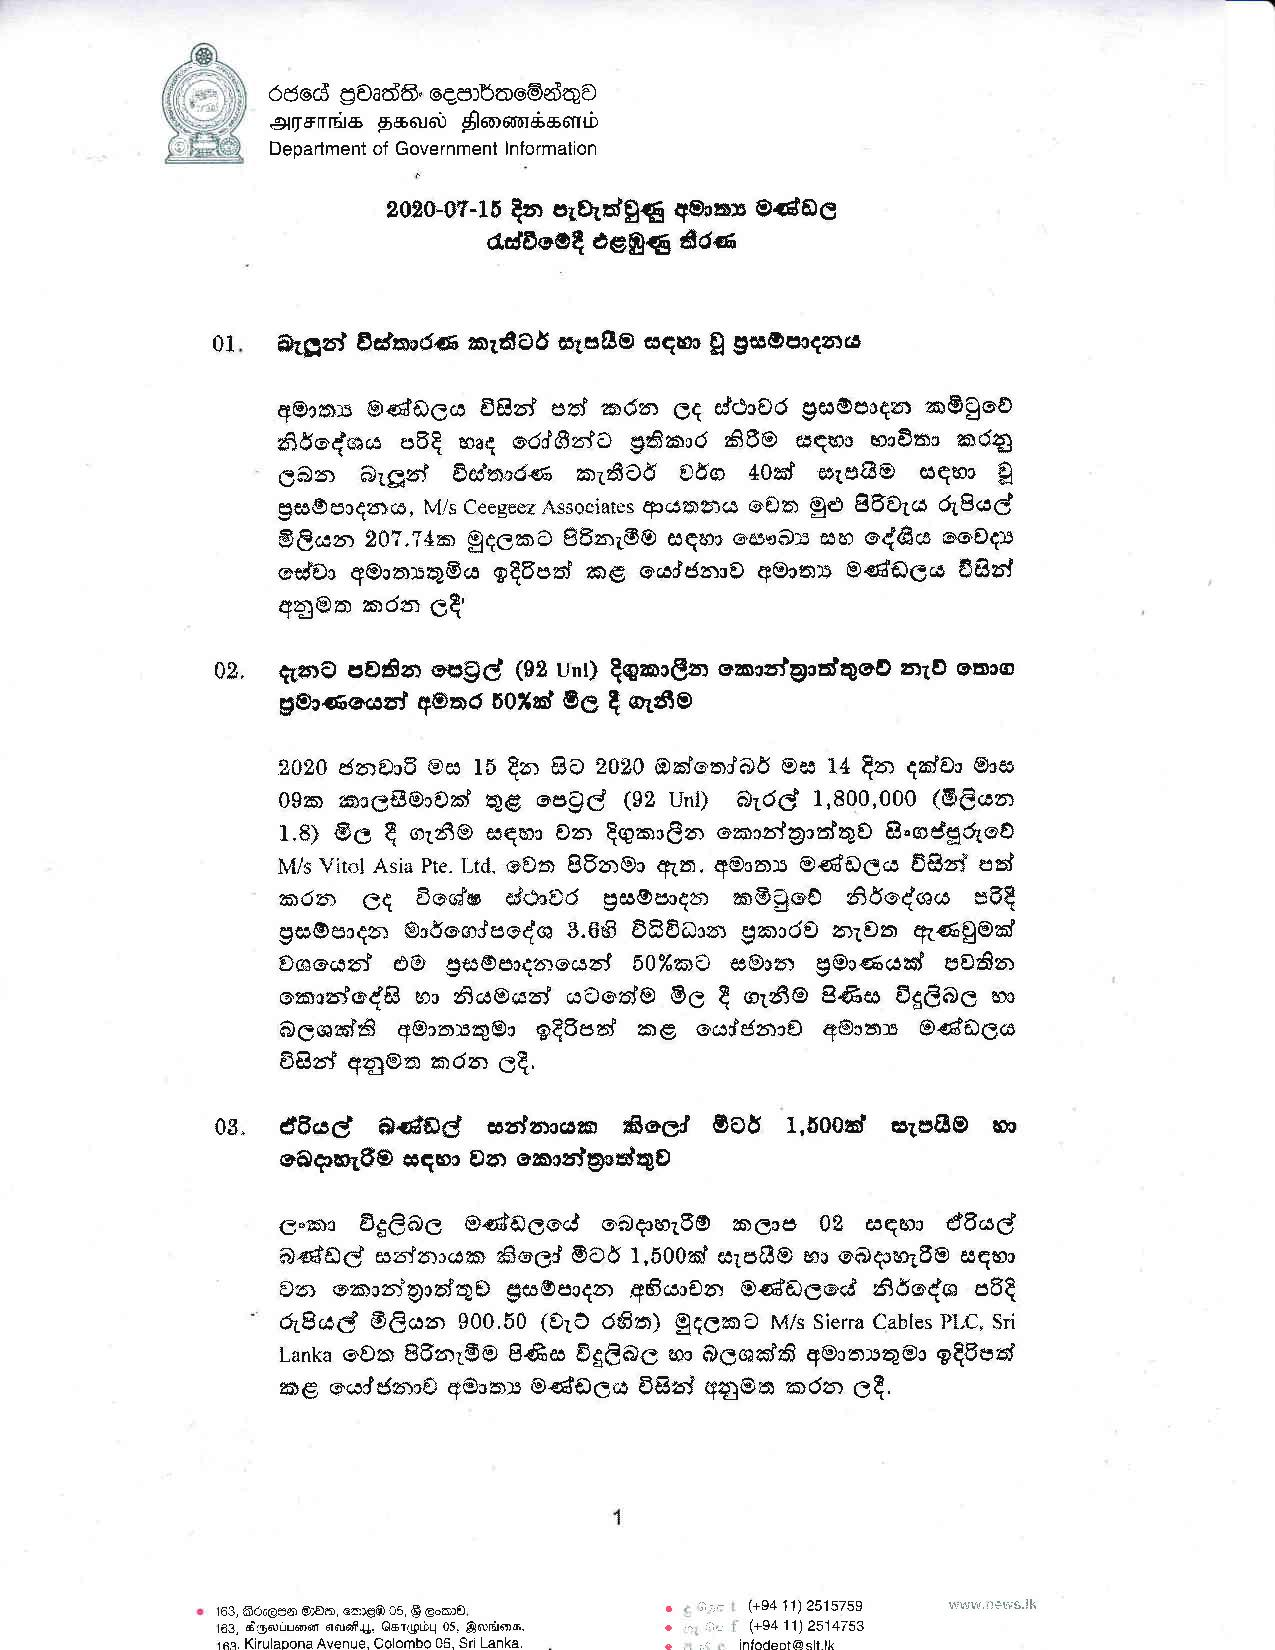 Cabinet Decision on 15.07.2020.Sinhala page 001